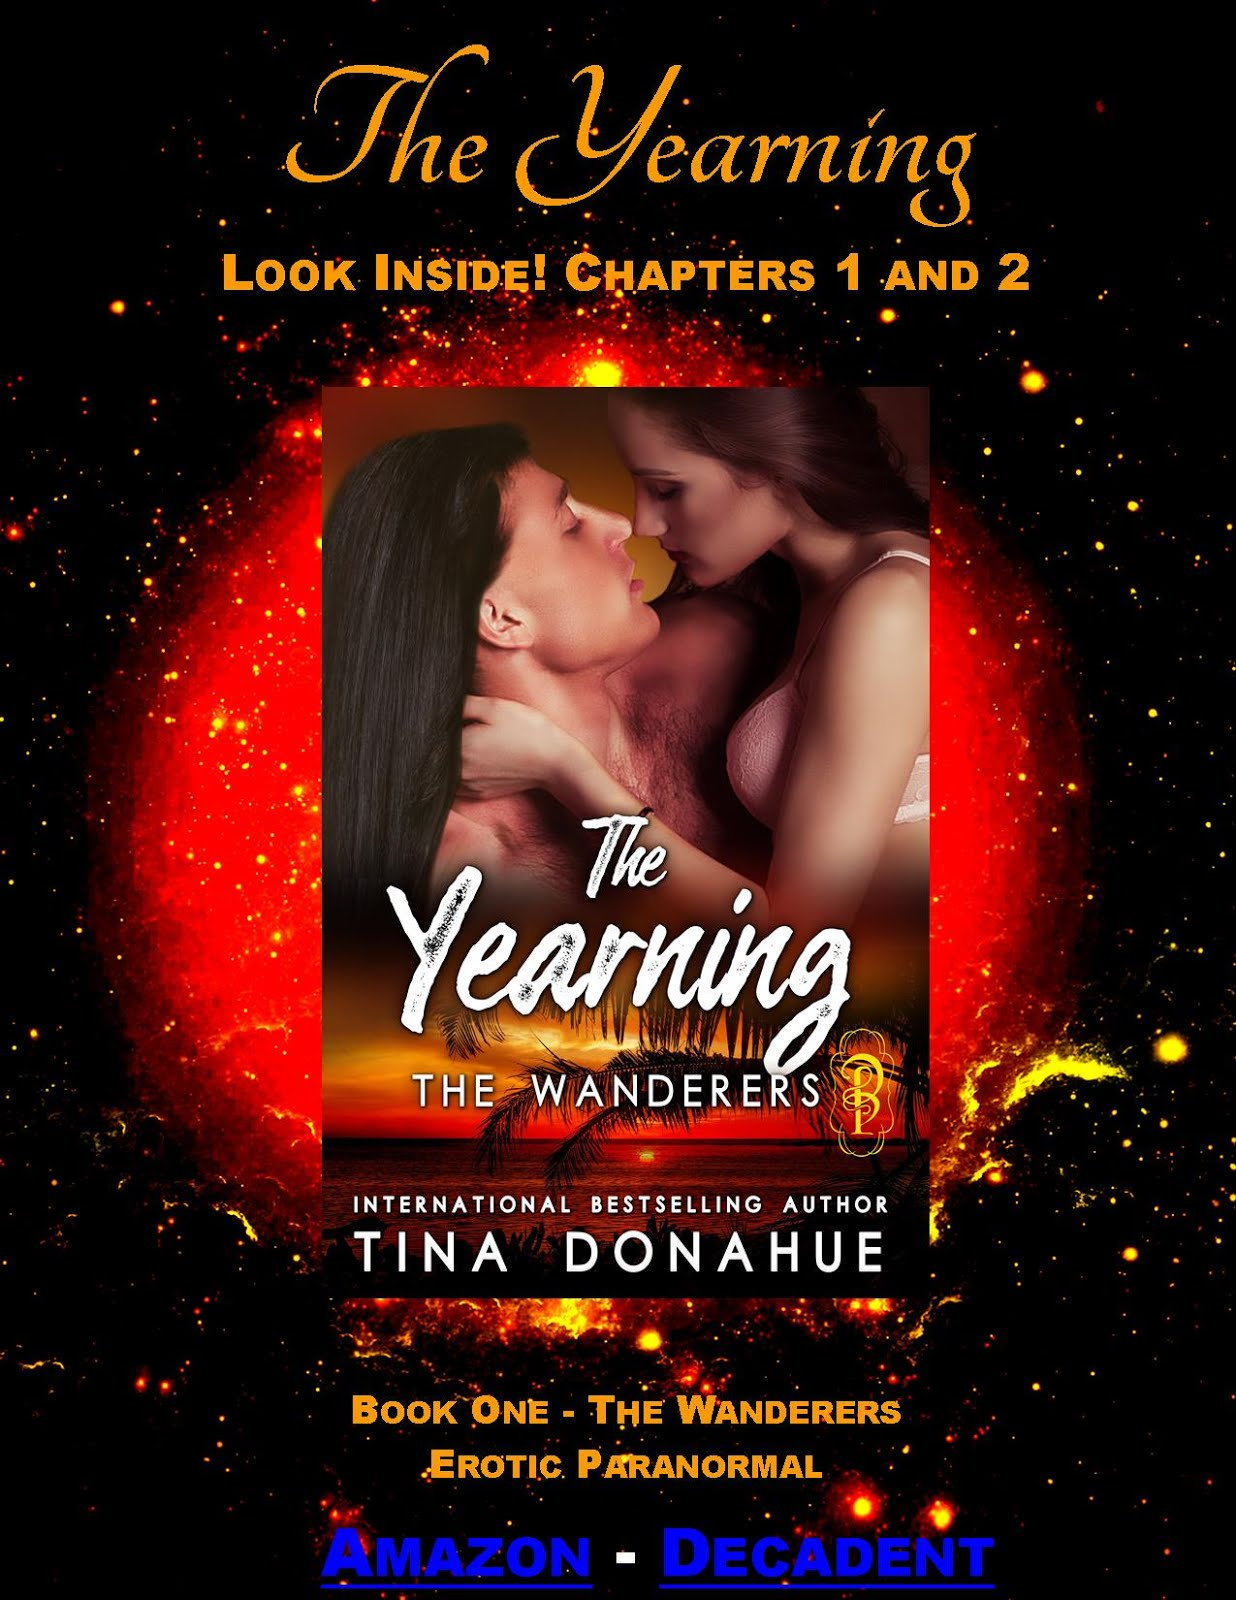 The Yearning - book 1 The Wanderers